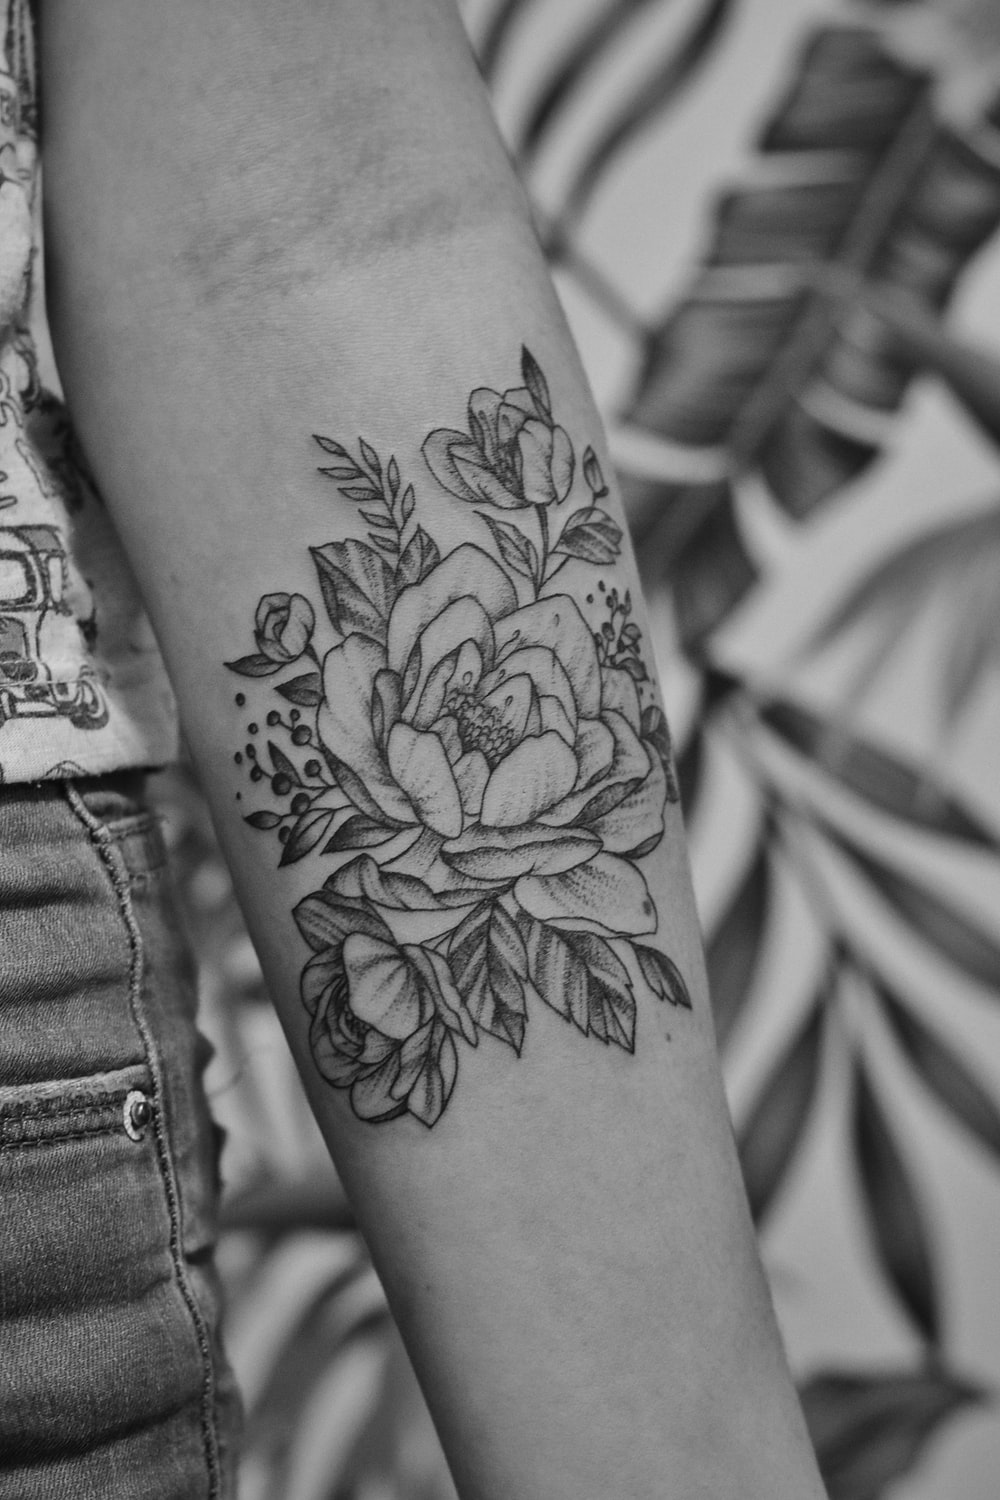 grayscale photo of floral arm tattoo